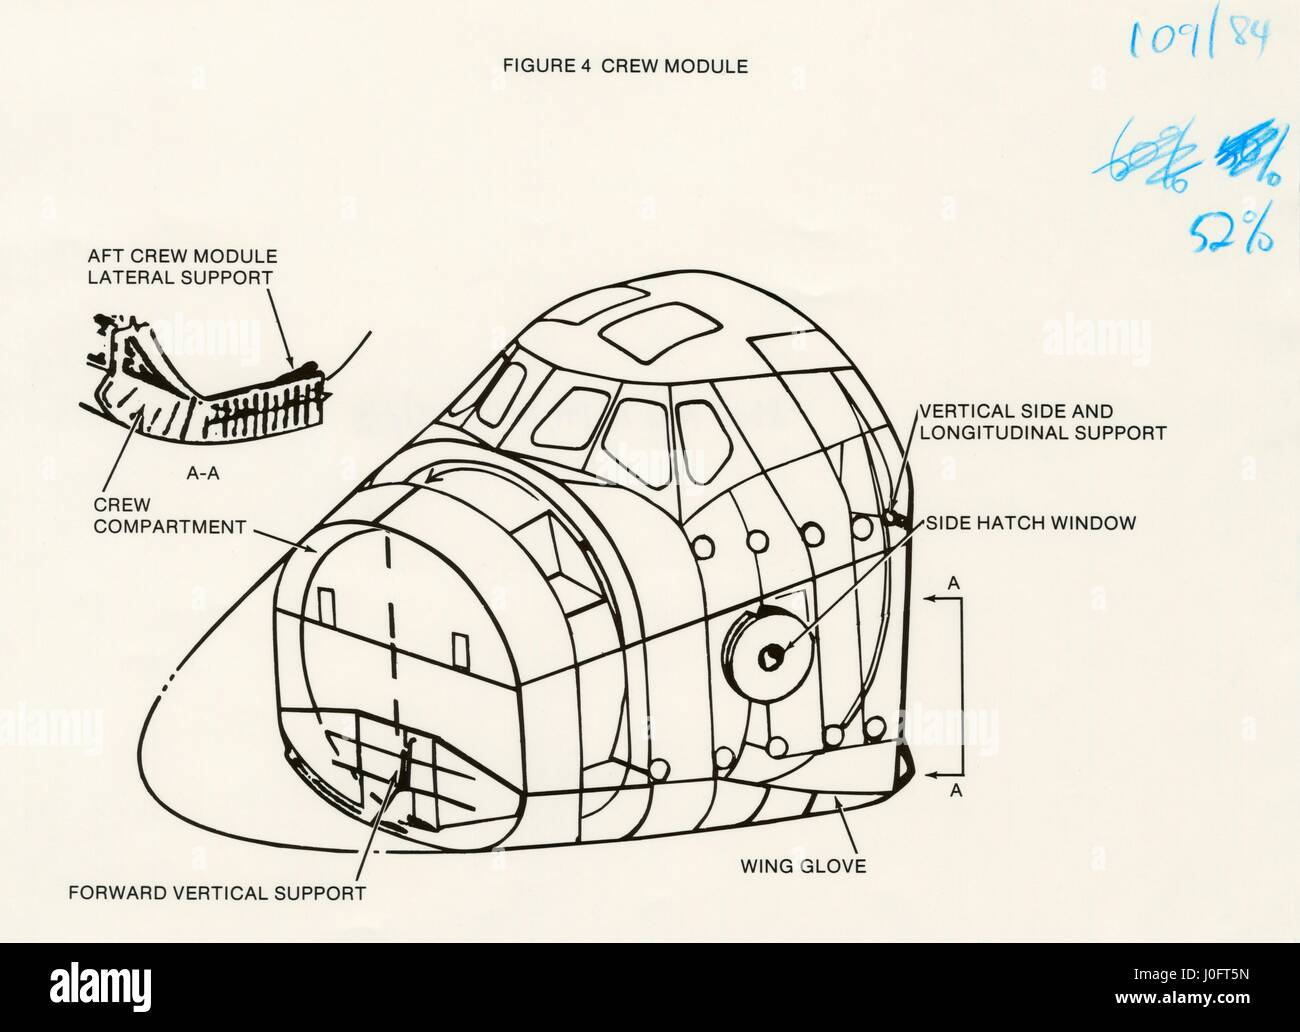 diagram of the crew module of the space shuttle orbiter stock photo rh alamy com Space Shuttle Fuel Cell Specs Space Shuttle Crew Compartment